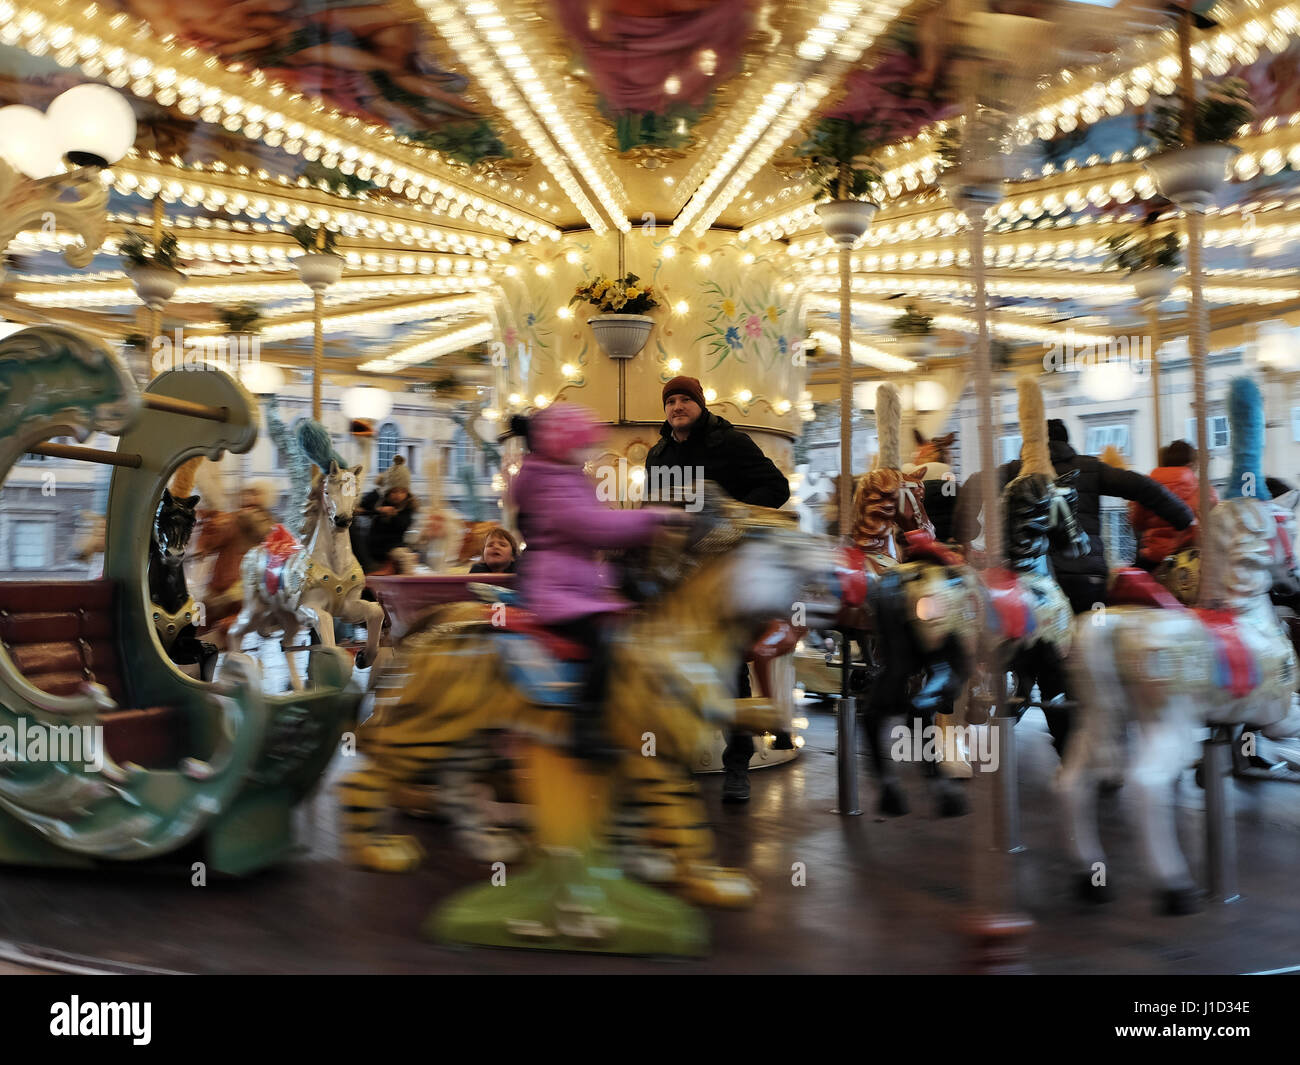 moving-carousel-the-carny-merry-go-round